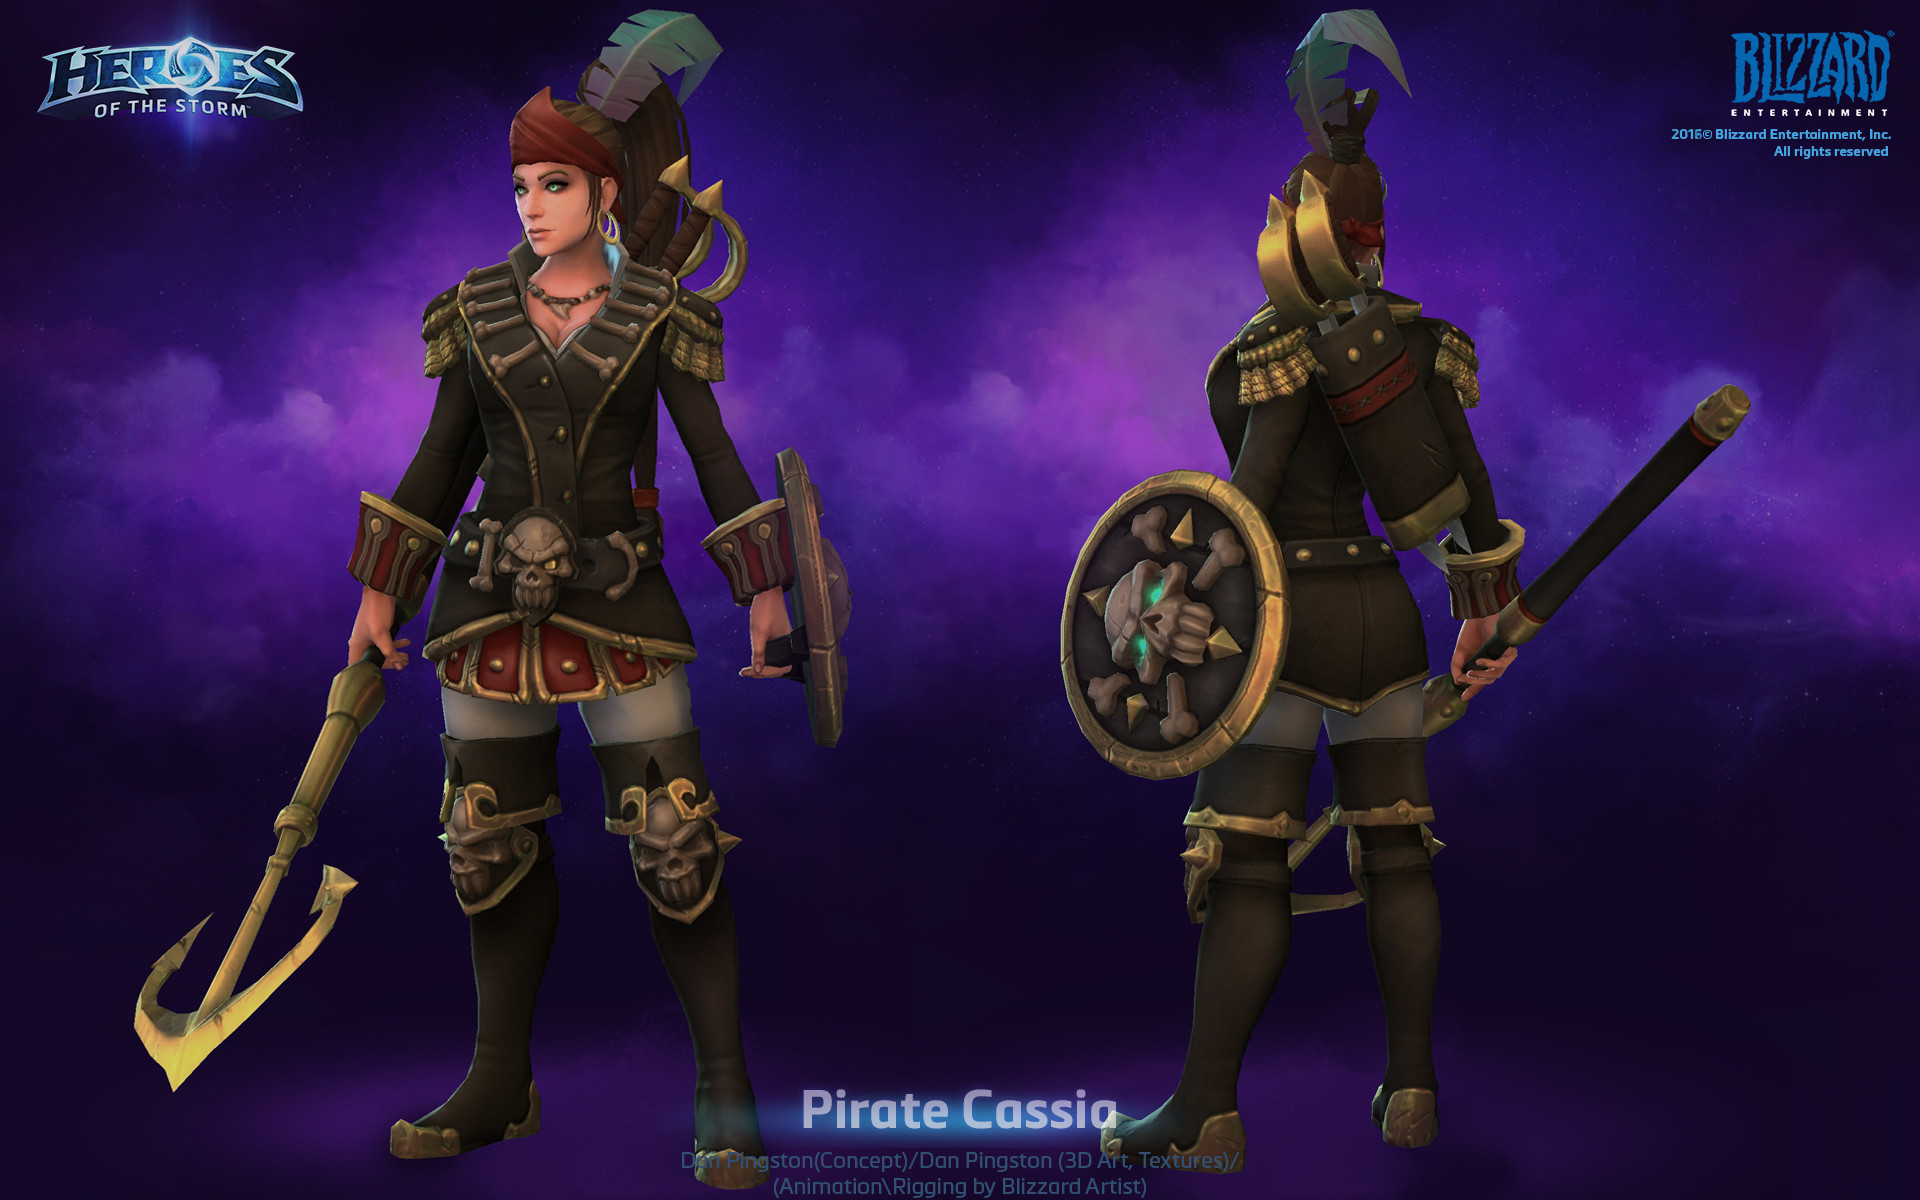 Dan pingston dan pingston pirate cassia